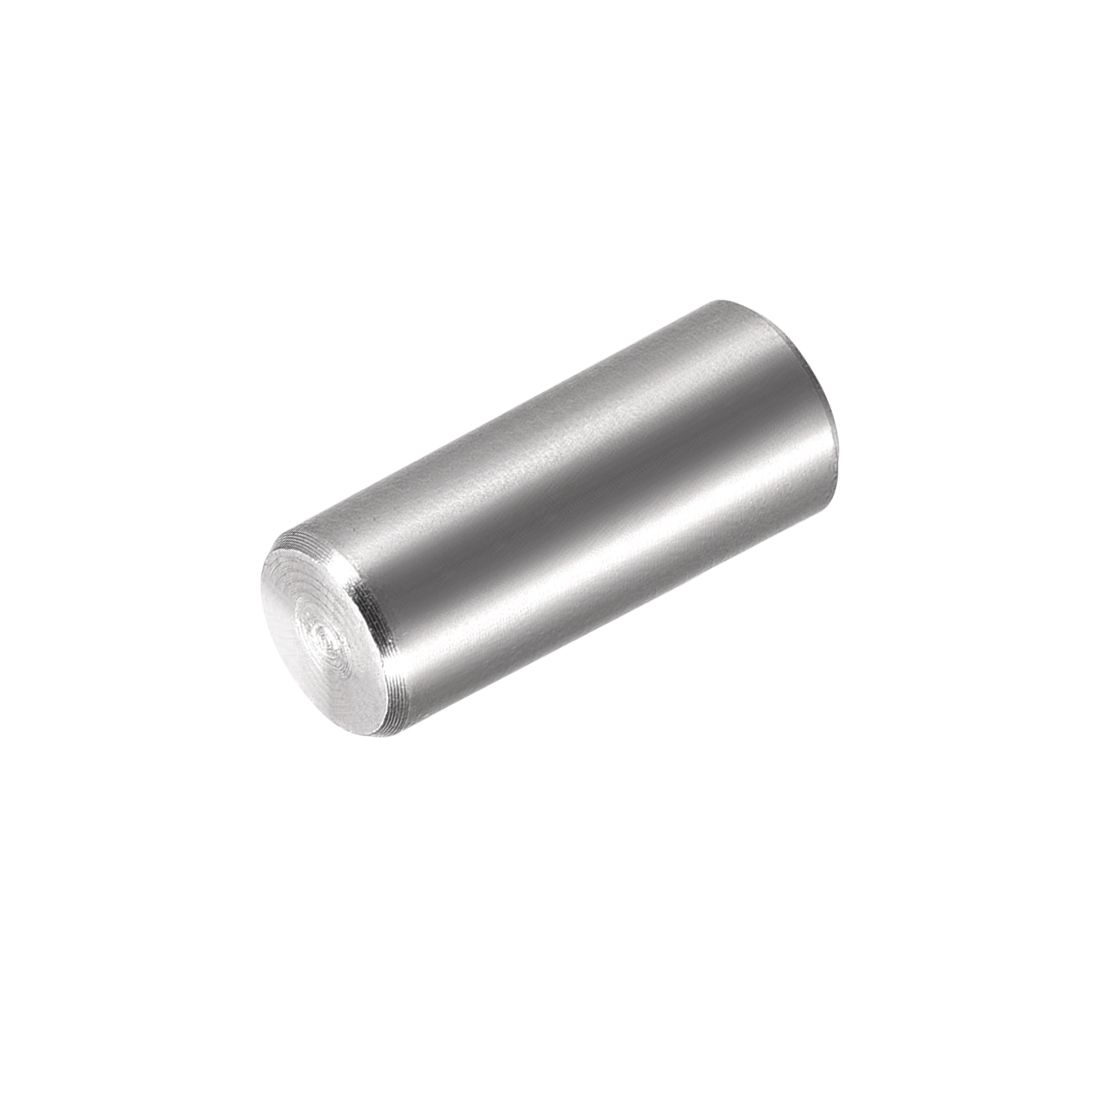 8mm x 20mm 1:50 Taper Pin 304 Stainless Steel Shelf Support Pin Fasten Elements